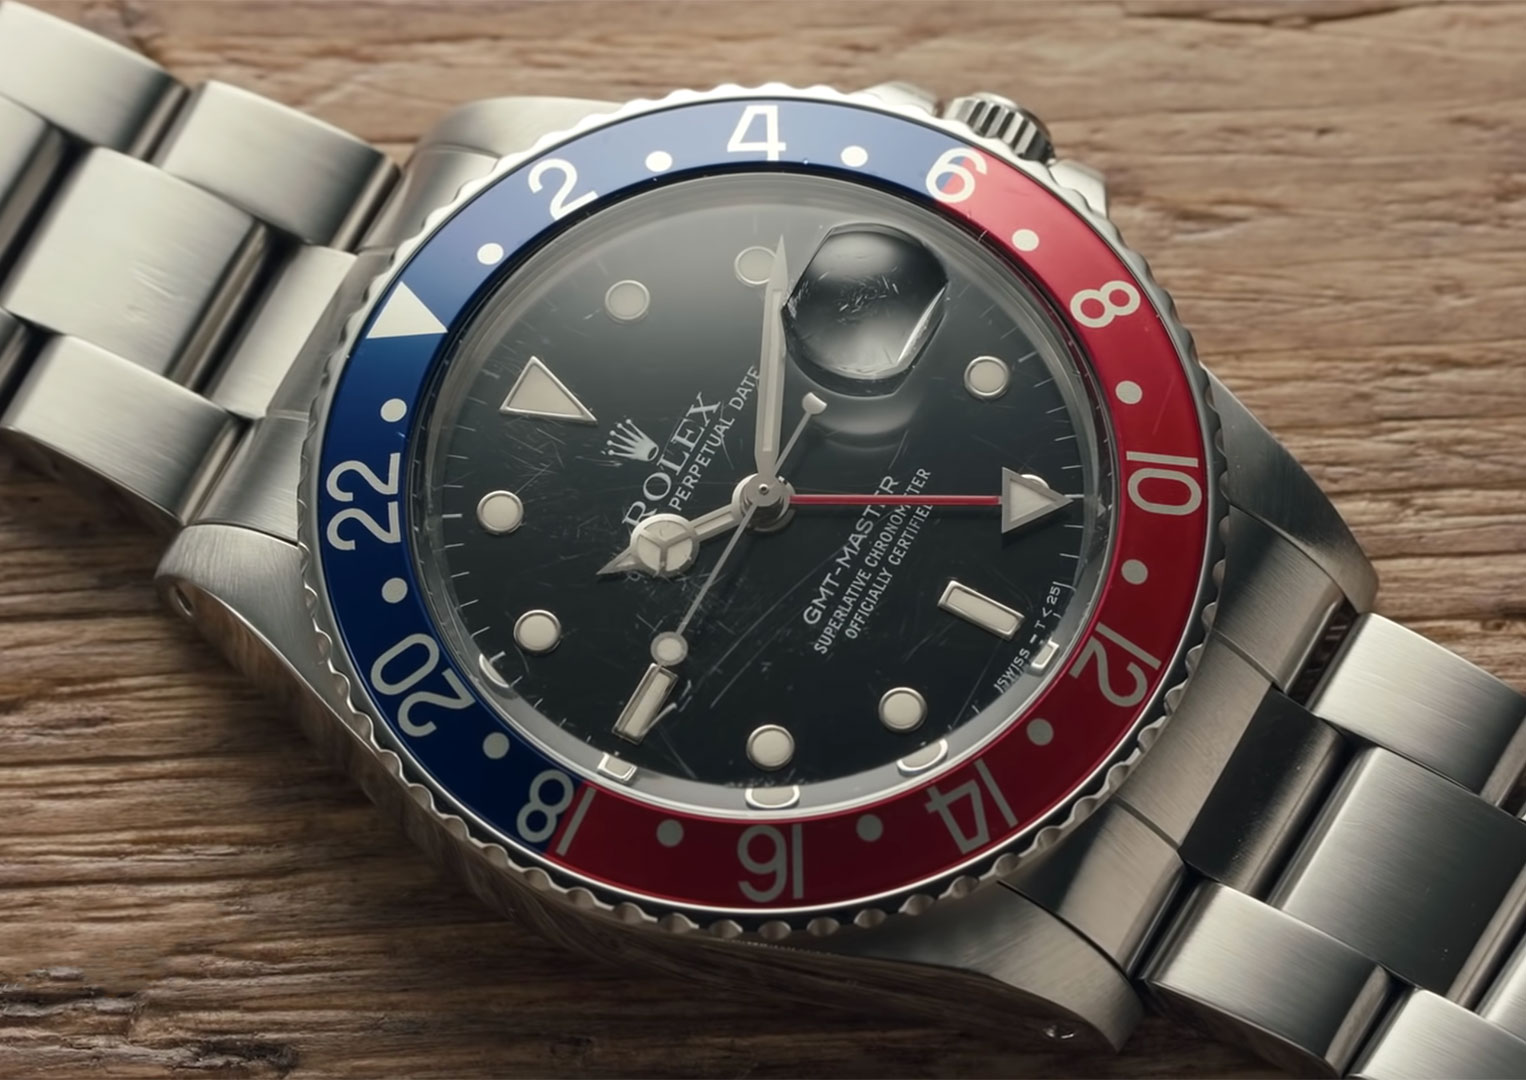 Edgar Mitchell wore both an Omega Speedmaster and his personal Rolex GMT-Master on the moon. Making the Rolex GMT-Master an unofficial moonwatch